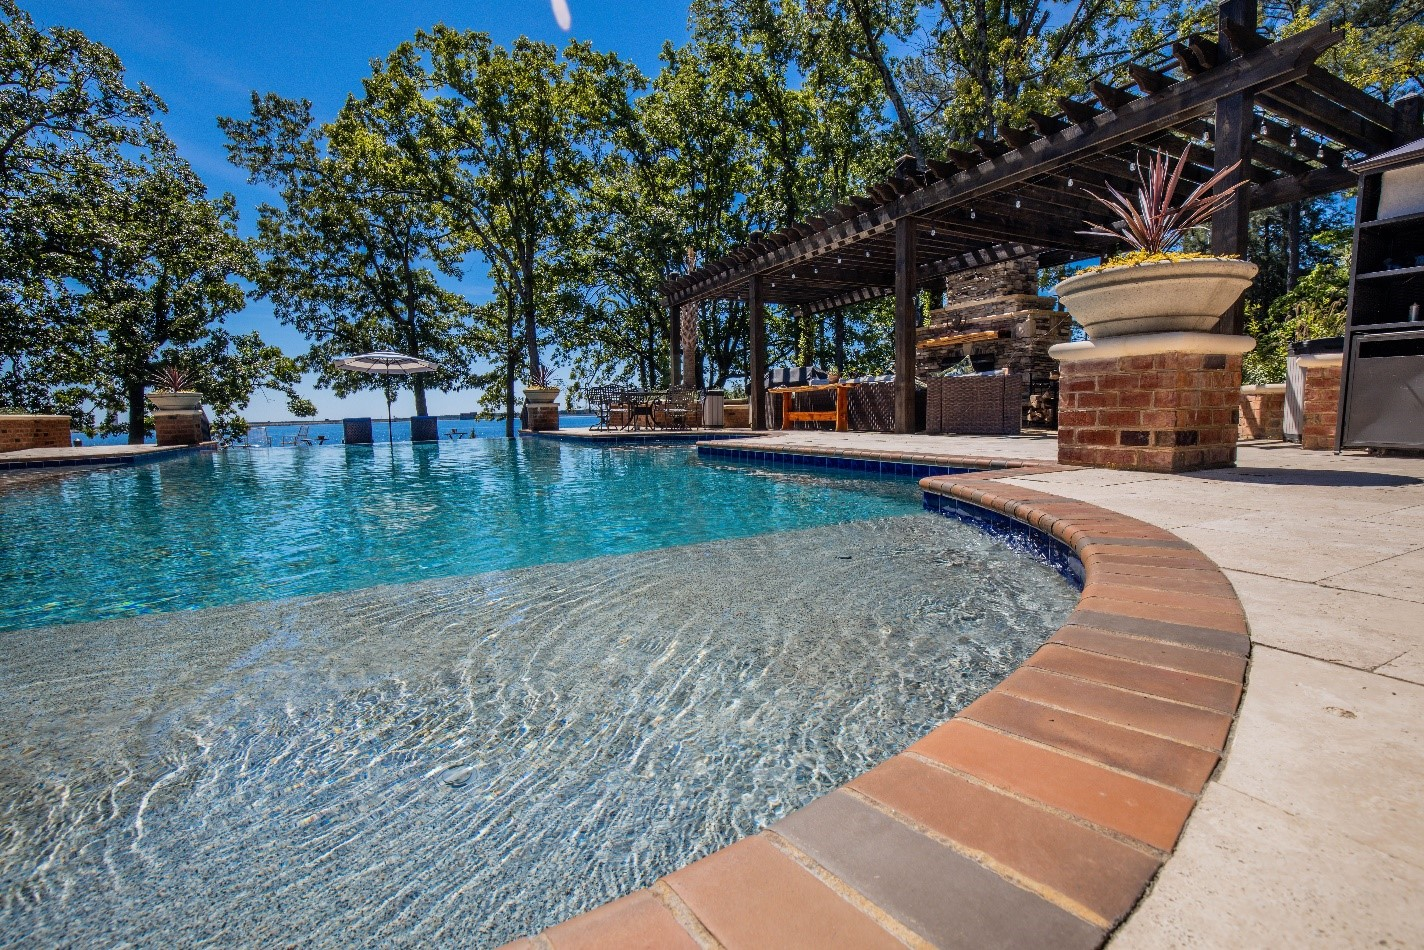 Pool Designs, Custom Pool, Inground Pools, Spas, Swimming Pools, The Clearwater Company, Columbia, SC